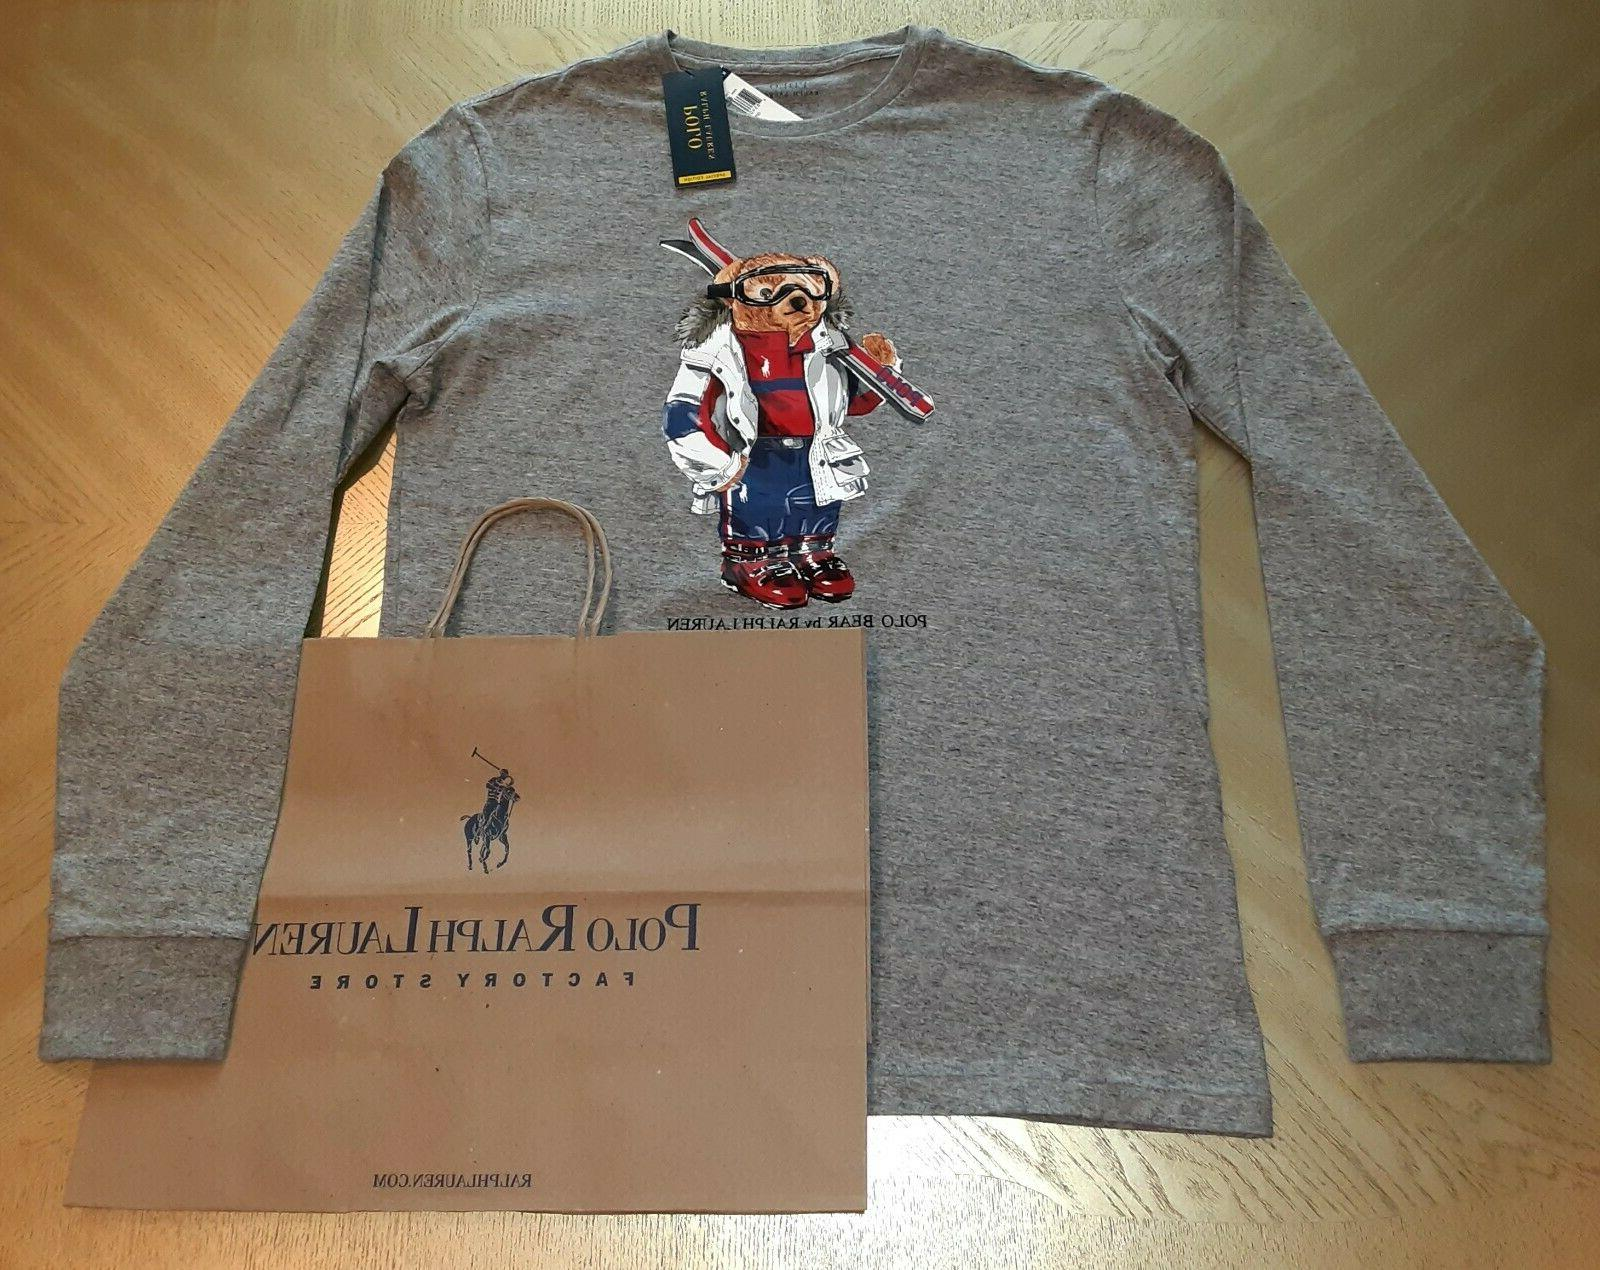 Polo Bear Ralph Lauren T-shirt Long Sleeve Tshirt SPECIAL ED